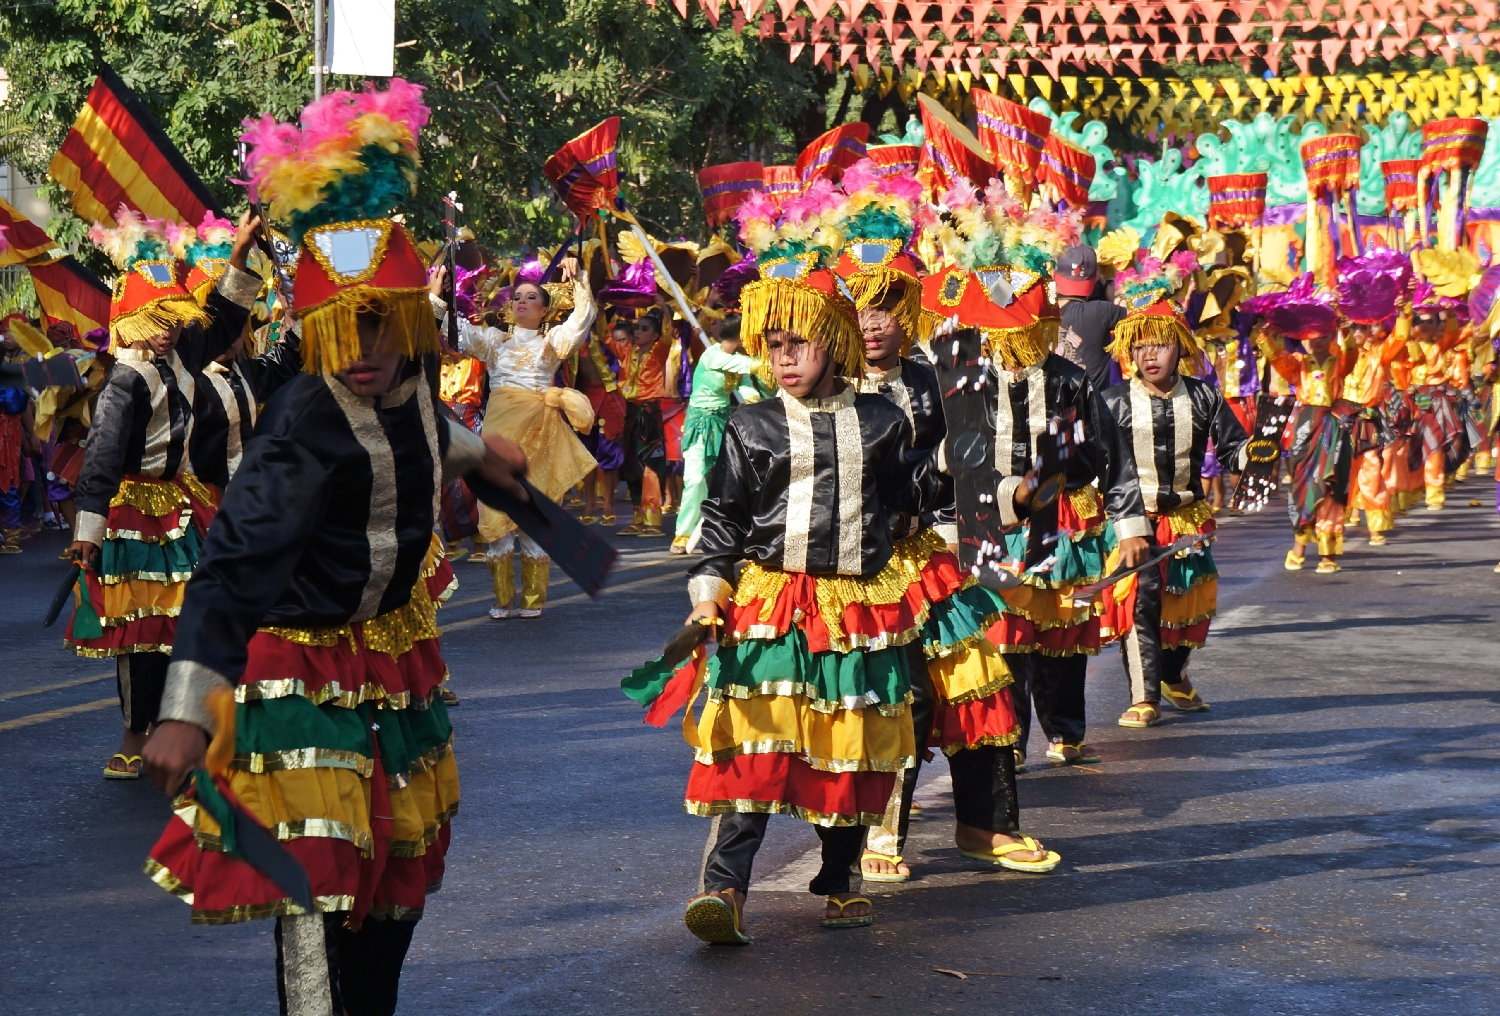 Tnalak Festival Street Dancing Competition is one of the most colorful in Mindanao